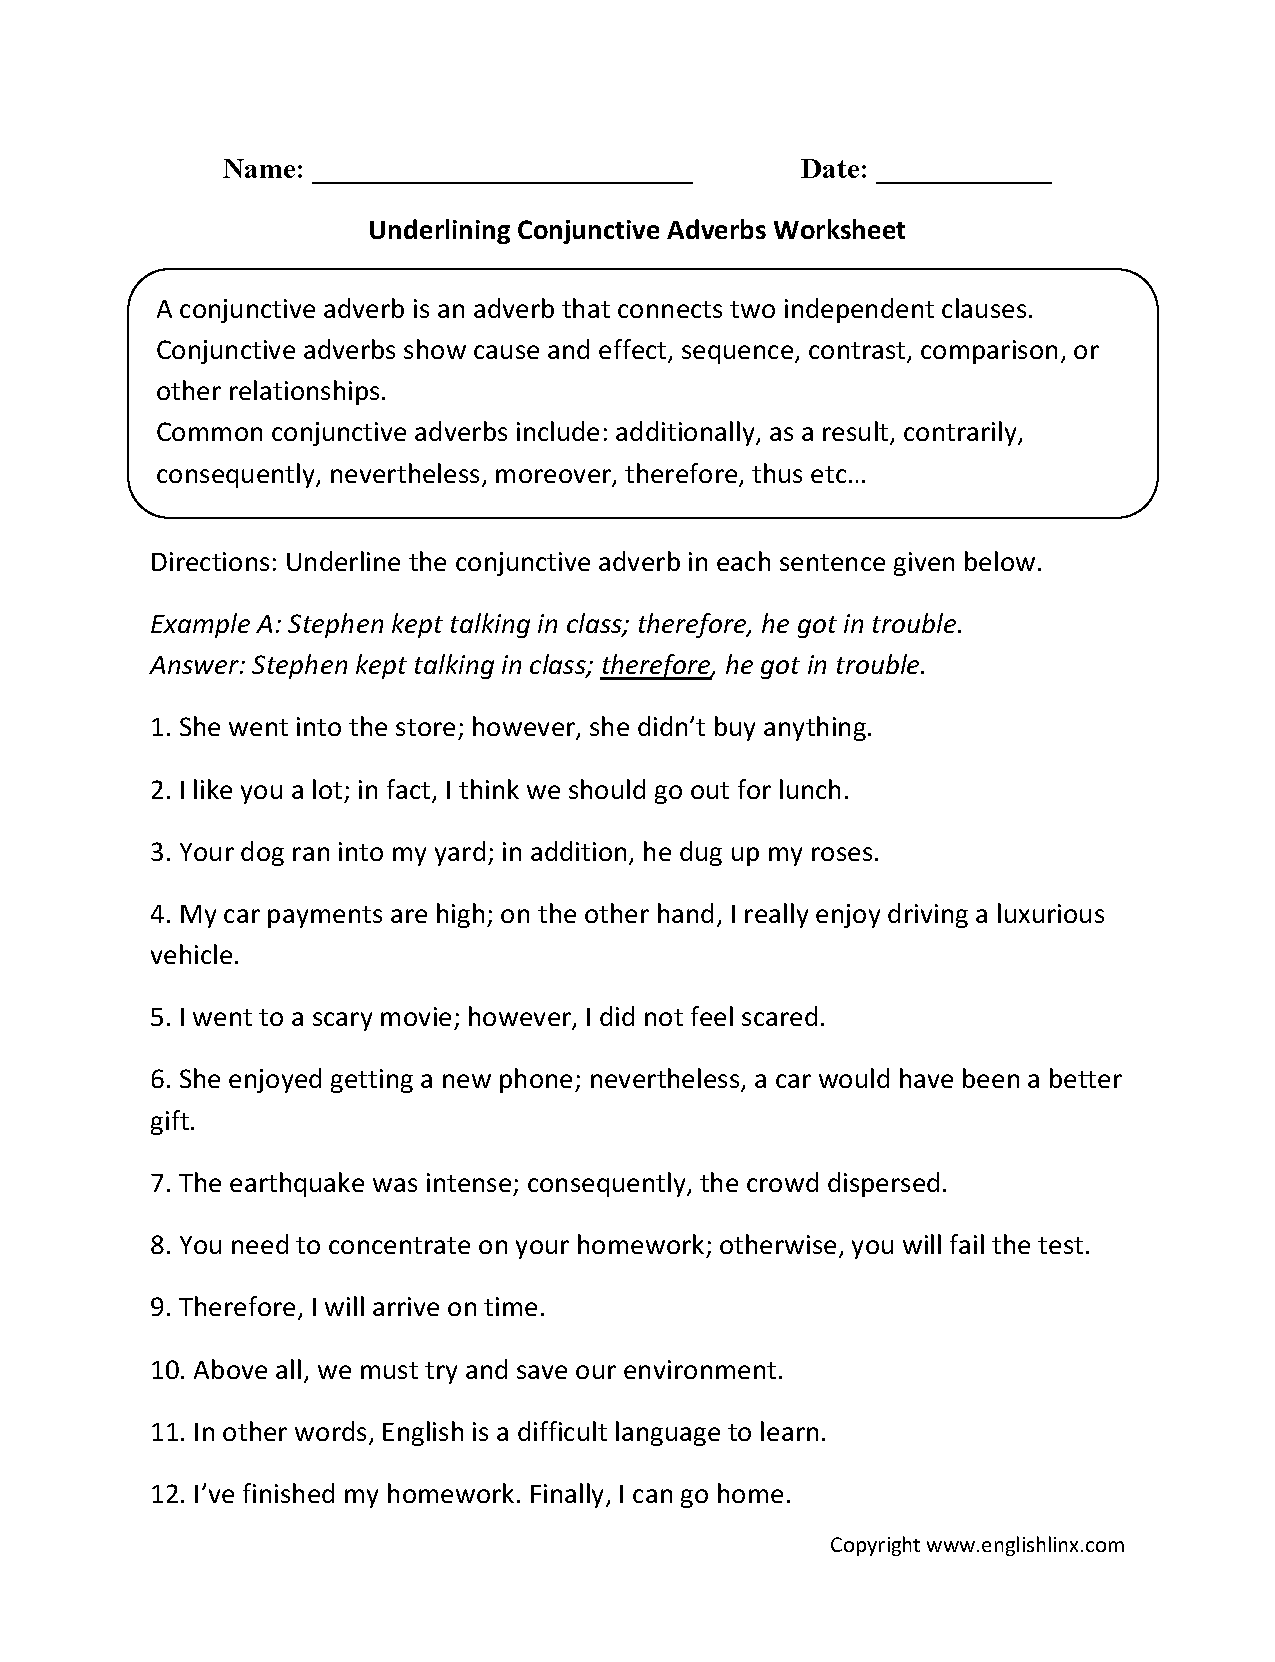 Weirdmailus  Inspiring Englishlinxcom  Conjunctions Worksheets With Entrancing Worksheet With Easy On The Eye Budgeting Worksheets Free Printable Also  Worksheets In Addition Kids Handwriting Worksheets And Worksheets For Simple Compound And Complex Sentences As Well As Maths Area And Perimeter Worksheets Additionally English Worksheet For Class  From Englishlinxcom With Weirdmailus  Entrancing Englishlinxcom  Conjunctions Worksheets With Easy On The Eye Worksheet And Inspiring Budgeting Worksheets Free Printable Also  Worksheets In Addition Kids Handwriting Worksheets From Englishlinxcom